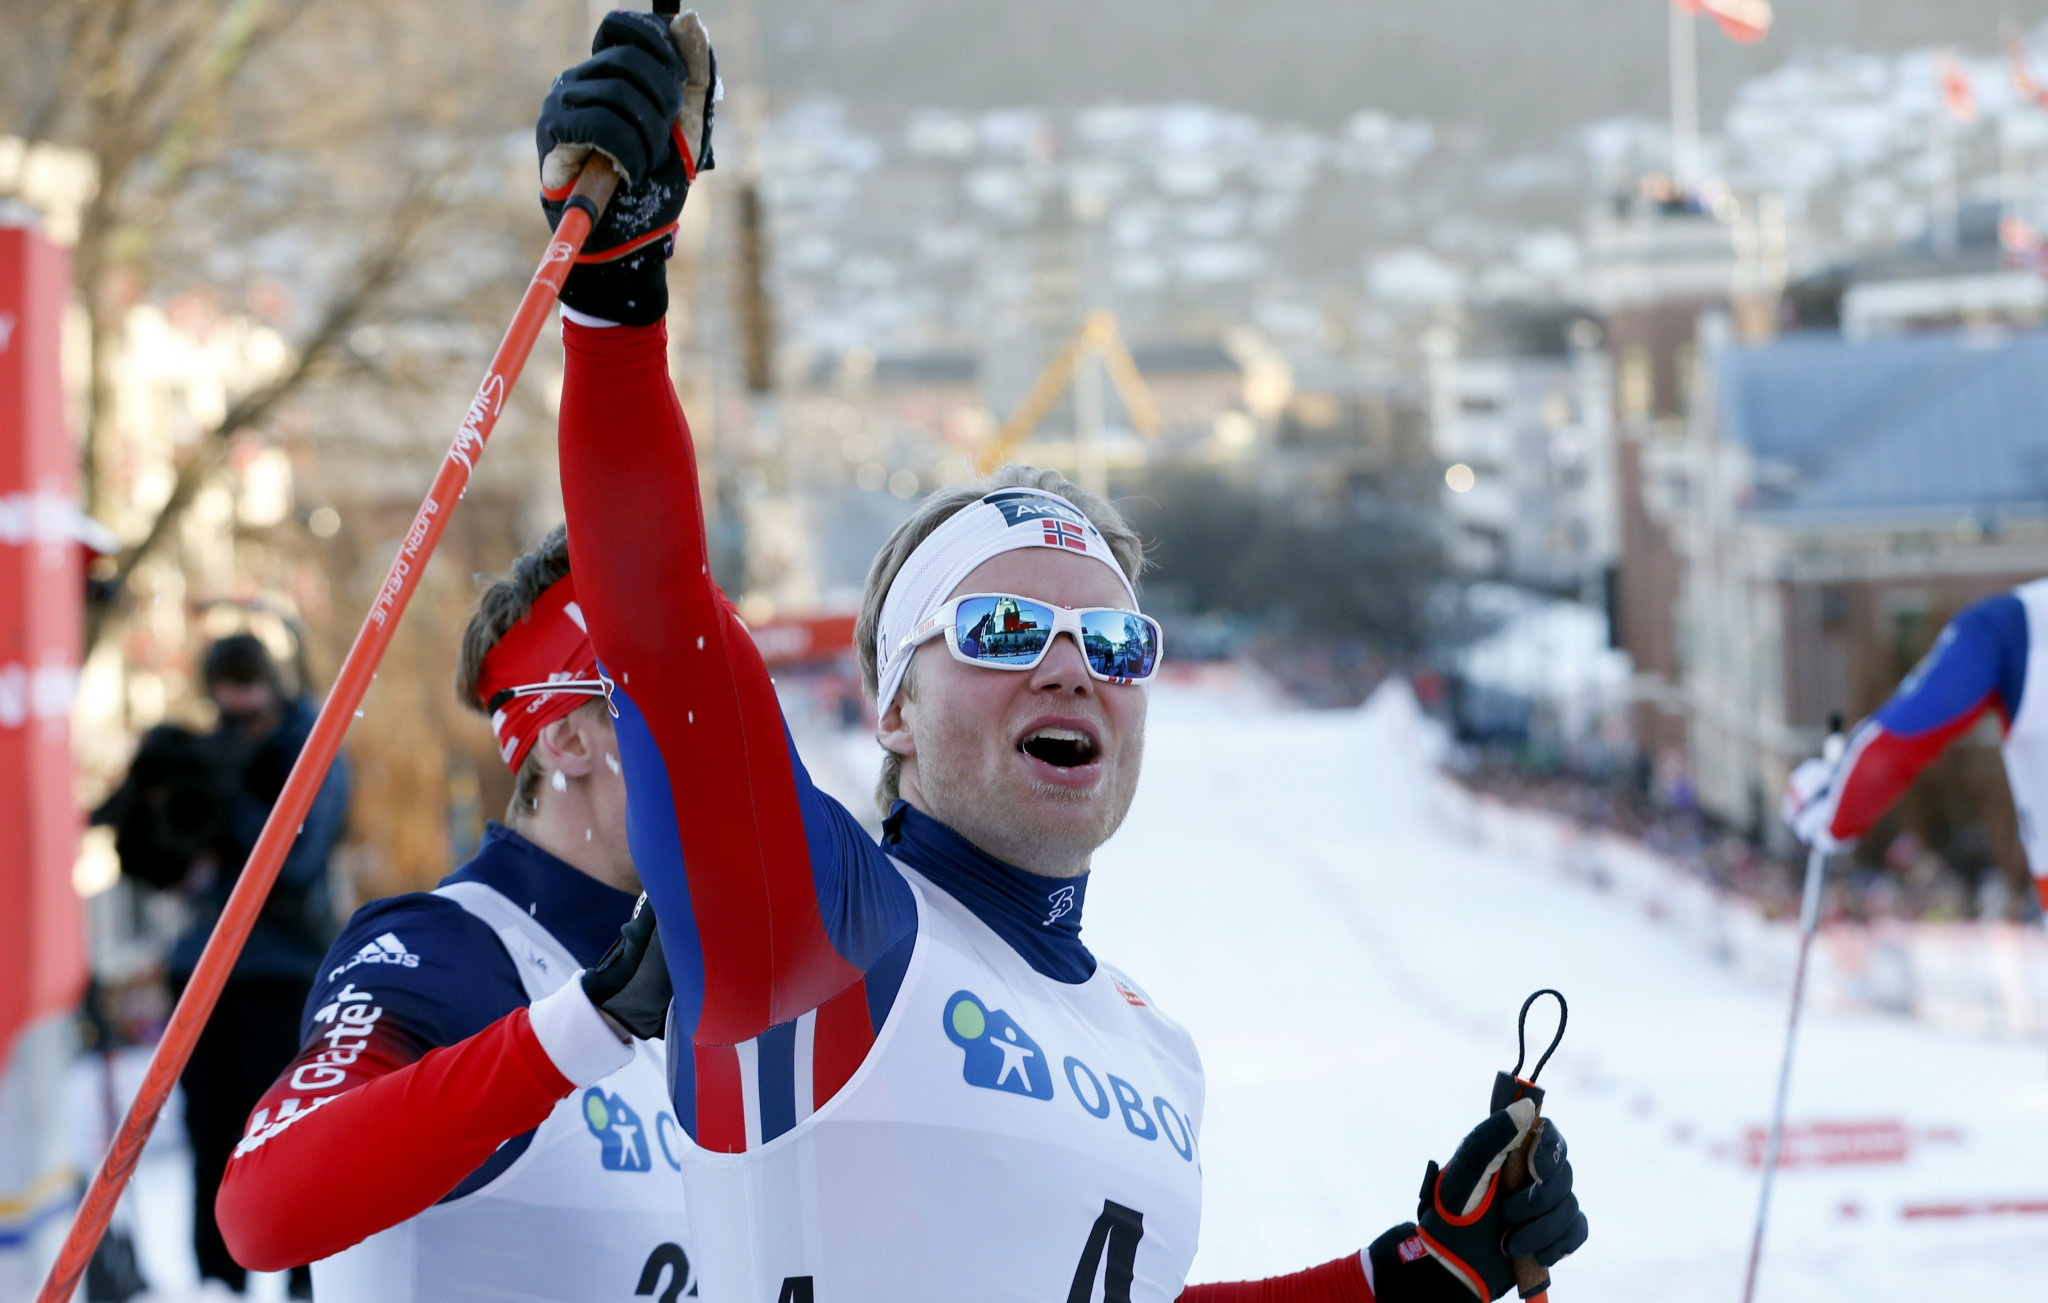 Norway's Brandsdal announces cross-country skiing retirement